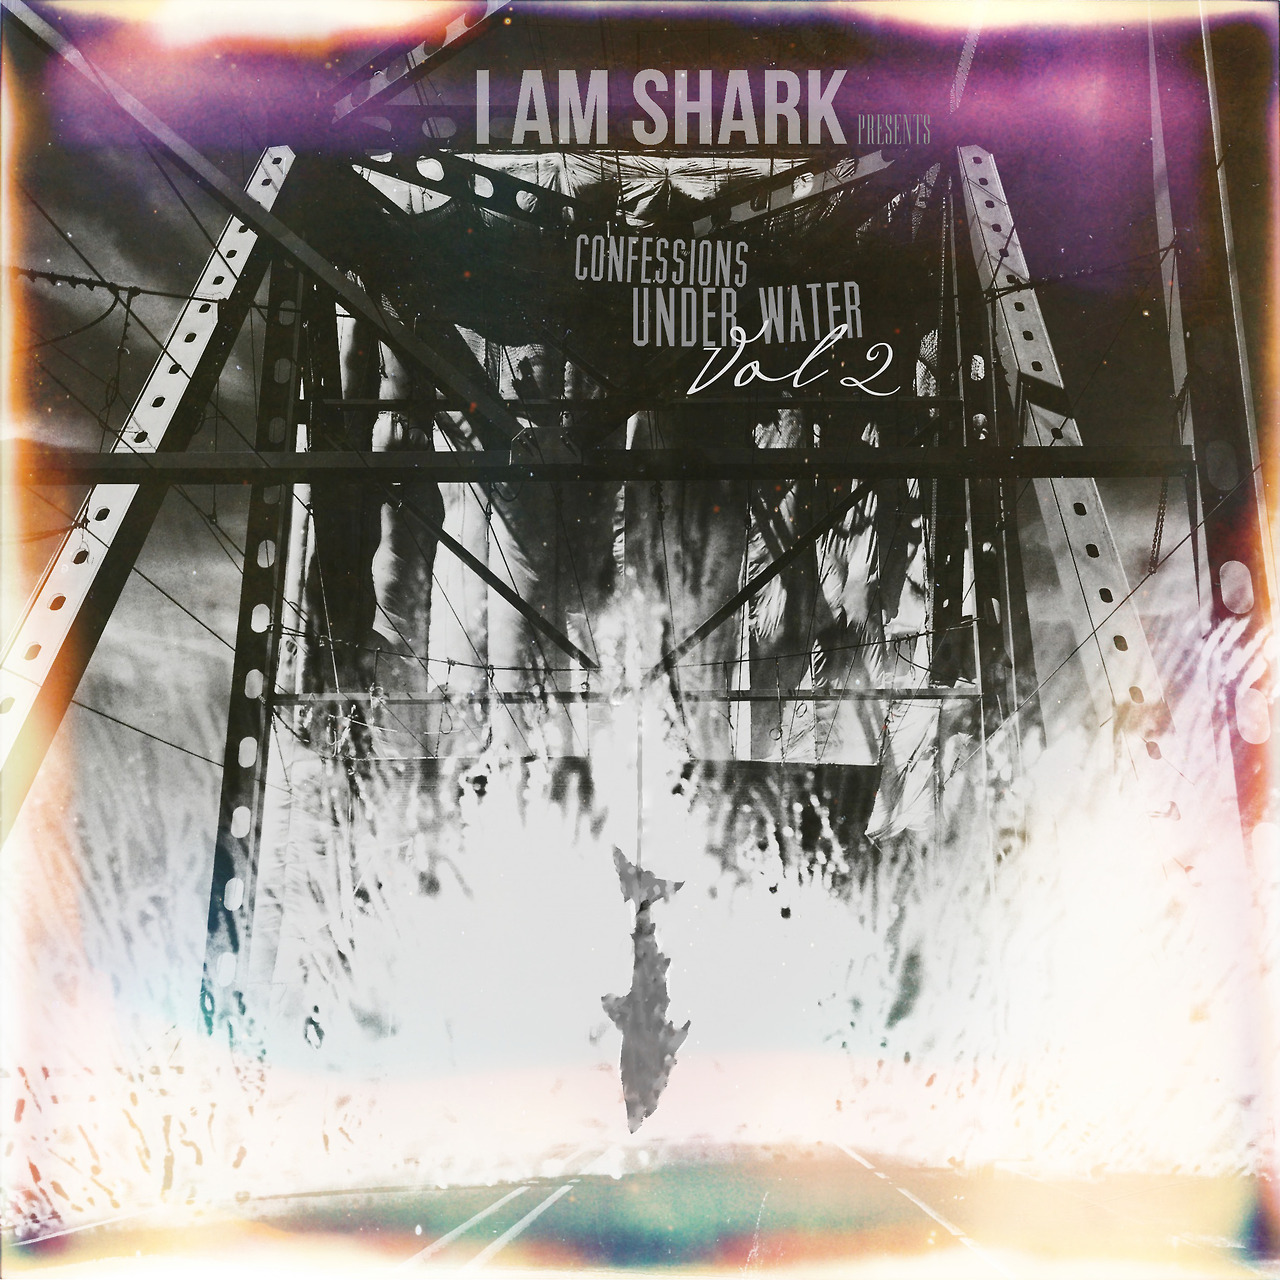 Our second annual compilation record at  I Am Shark , Confessions Under Water Vol. 2, is now available for free digital download. This record featuring some our favorite artists and best friends  who have new releases out and busting there asses to tour around the world. I was blessed with how well the well the introductory release turned out and really wanted to push the boundaries and get some exciting tracks for 2013.    Compilation available here:  http://iamshark.limitedrun.com/products/517614-confessions-under-water-vol-2        01.  The Story Changes  - We Were Numb   02.  Owen  - Blues To Black   03.  Tides Of Man  - Young And Courageous   04.  Braid  - Lux   05.  Blue Of Colors  - Goodbye Stranger   06.  Edhochuli  - Sir, I've Been Observing You For More Than Five Minutes And You Have Yet         To Say Whoo Once   07.  Their / They're / There  - Their / They're / Therapy   08.  Hospital Ships  - If It Speaks   09.  Fun Size  - End Of The Road   10.  Wives  - Cheaters   11.  Y(our) Fri(end)  - Pallet   12.  The New Amsterdams  - Dear Lover   13.  Gates  - Like This You Mean   14.  One If By Land  - Yesterburner   15.  Plow United  - Cui Bono?   16.  Bells & Whistles  - Distance    Cover photography by the wonderful Ryan Russell -  www.ryanrussell.com    These are some of my favorite artists and releases of the current and past year.    They all have new records out and are always touring. Please support them in    any way you can. Thank You!